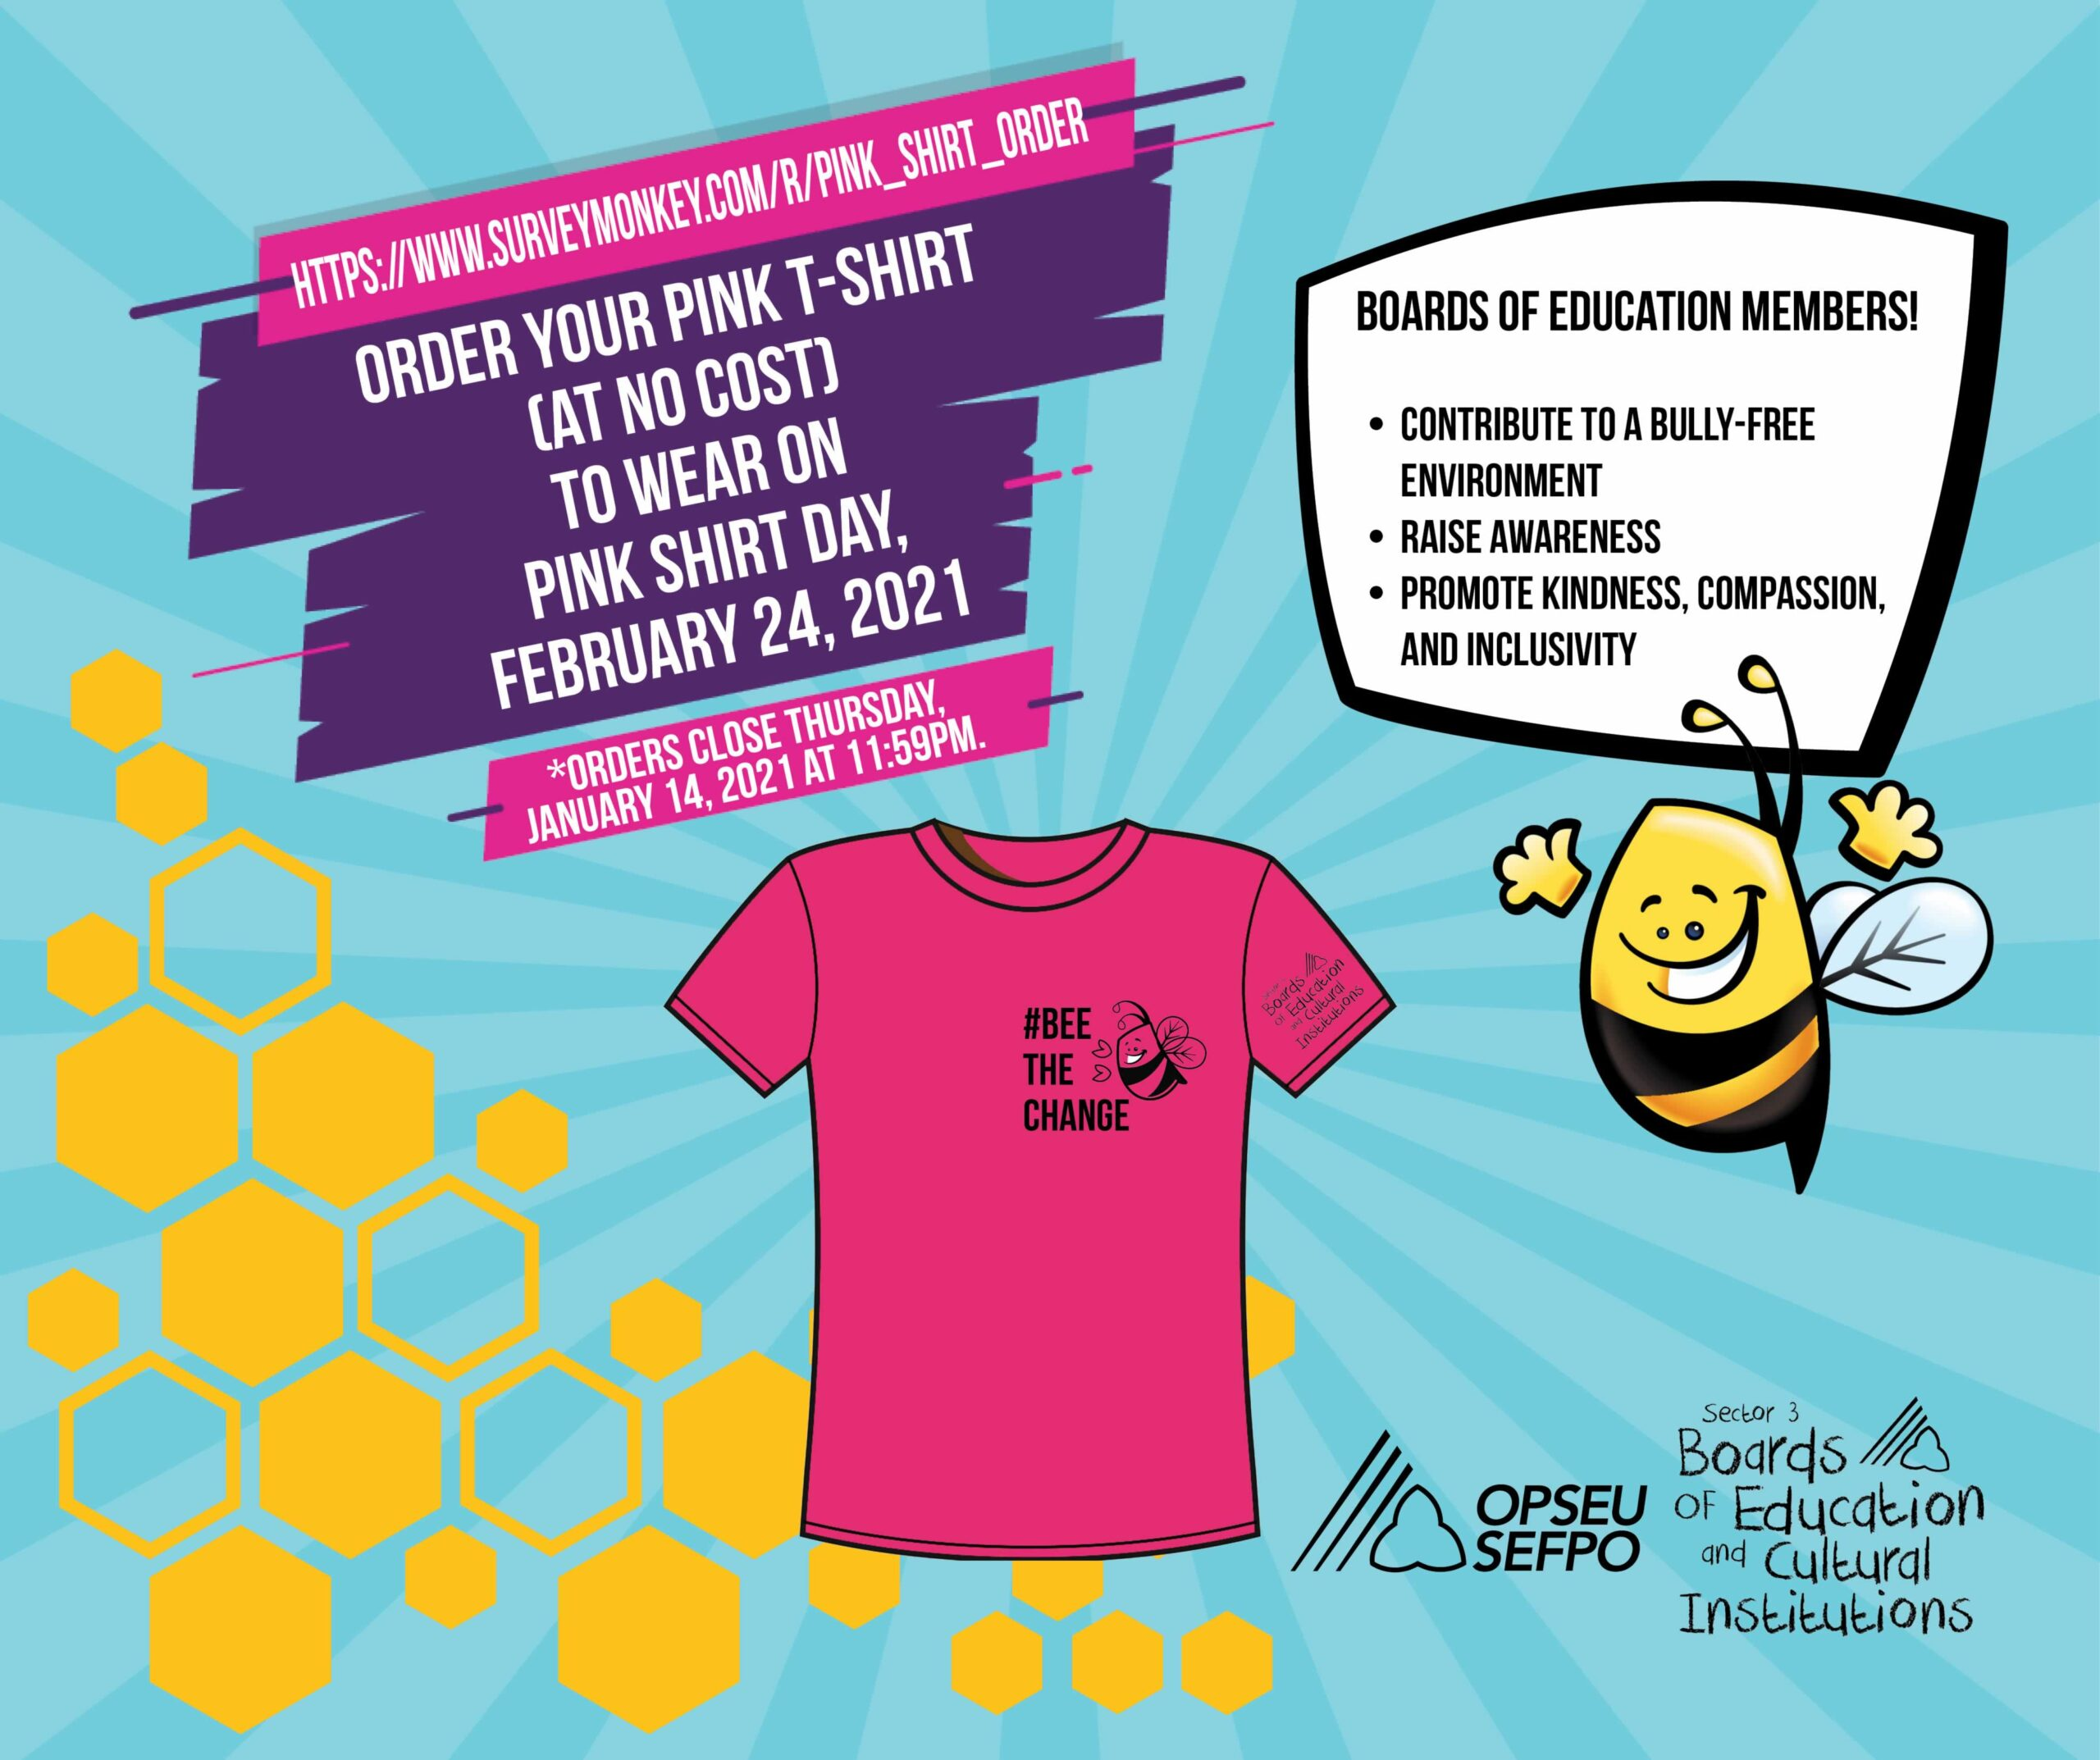 Infographic for Pink Shirt day: Order your pink shirt